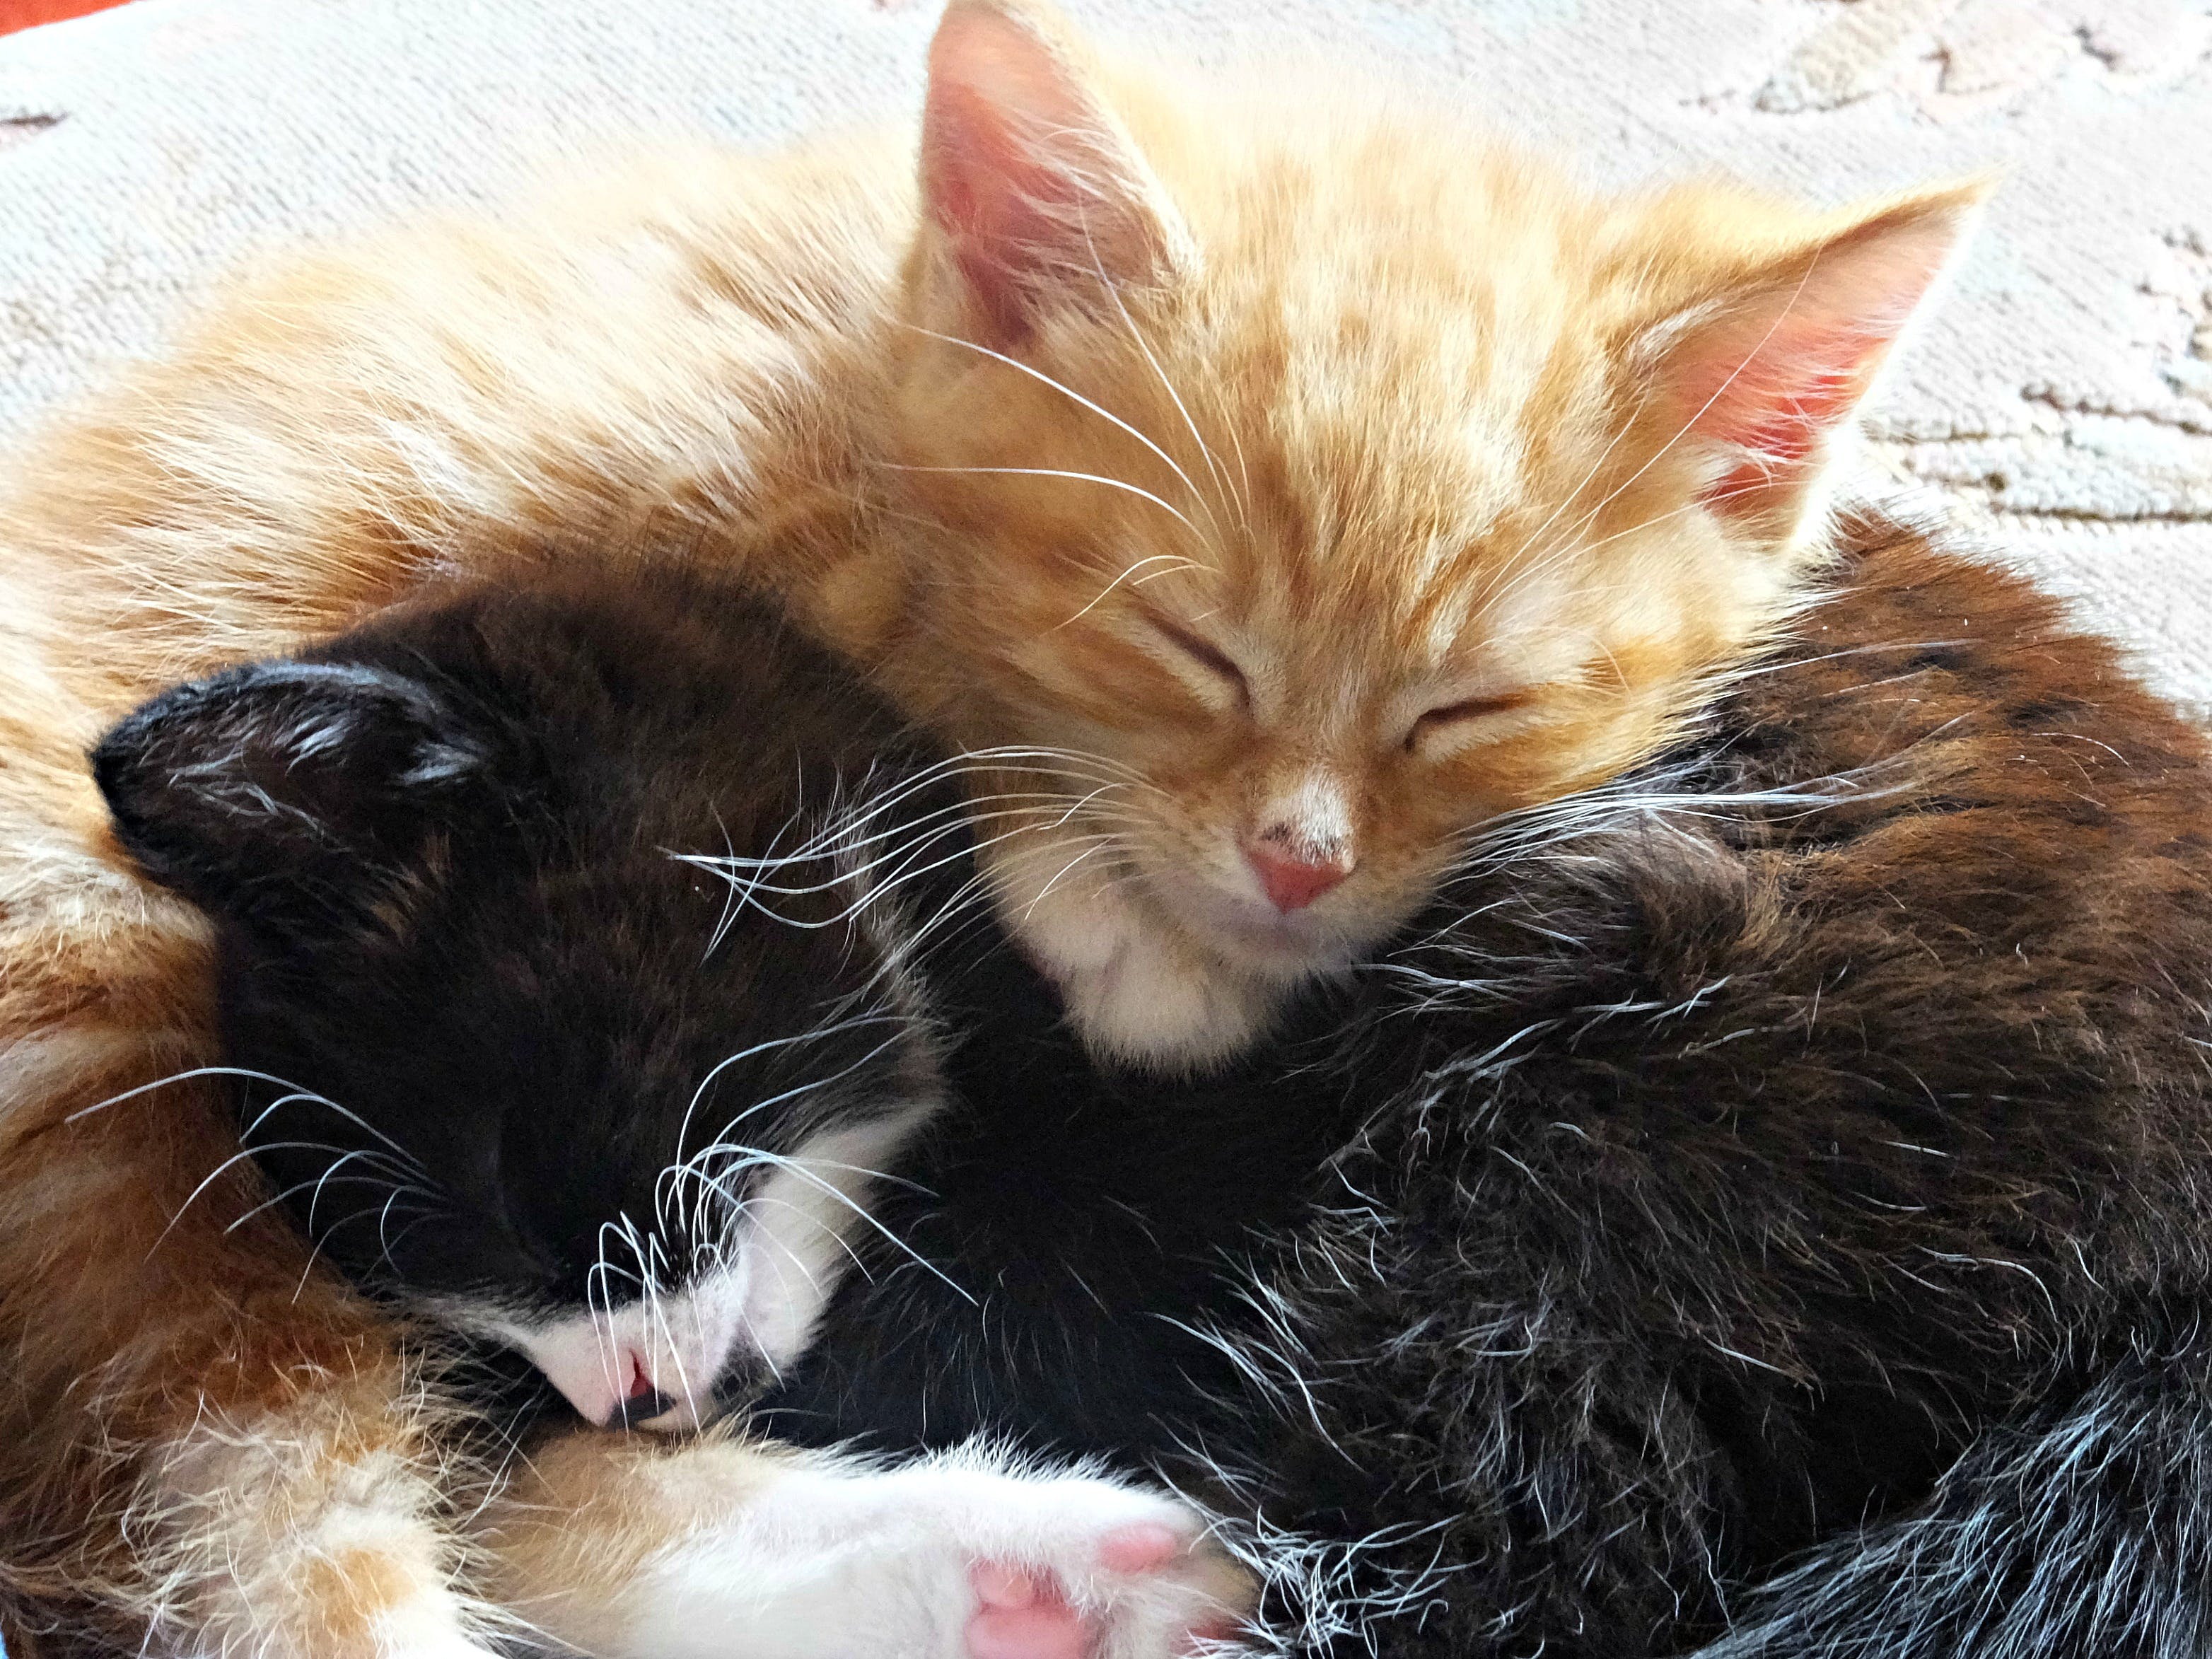 Free stock photo of babies, black-and-white, cats, ginger cat